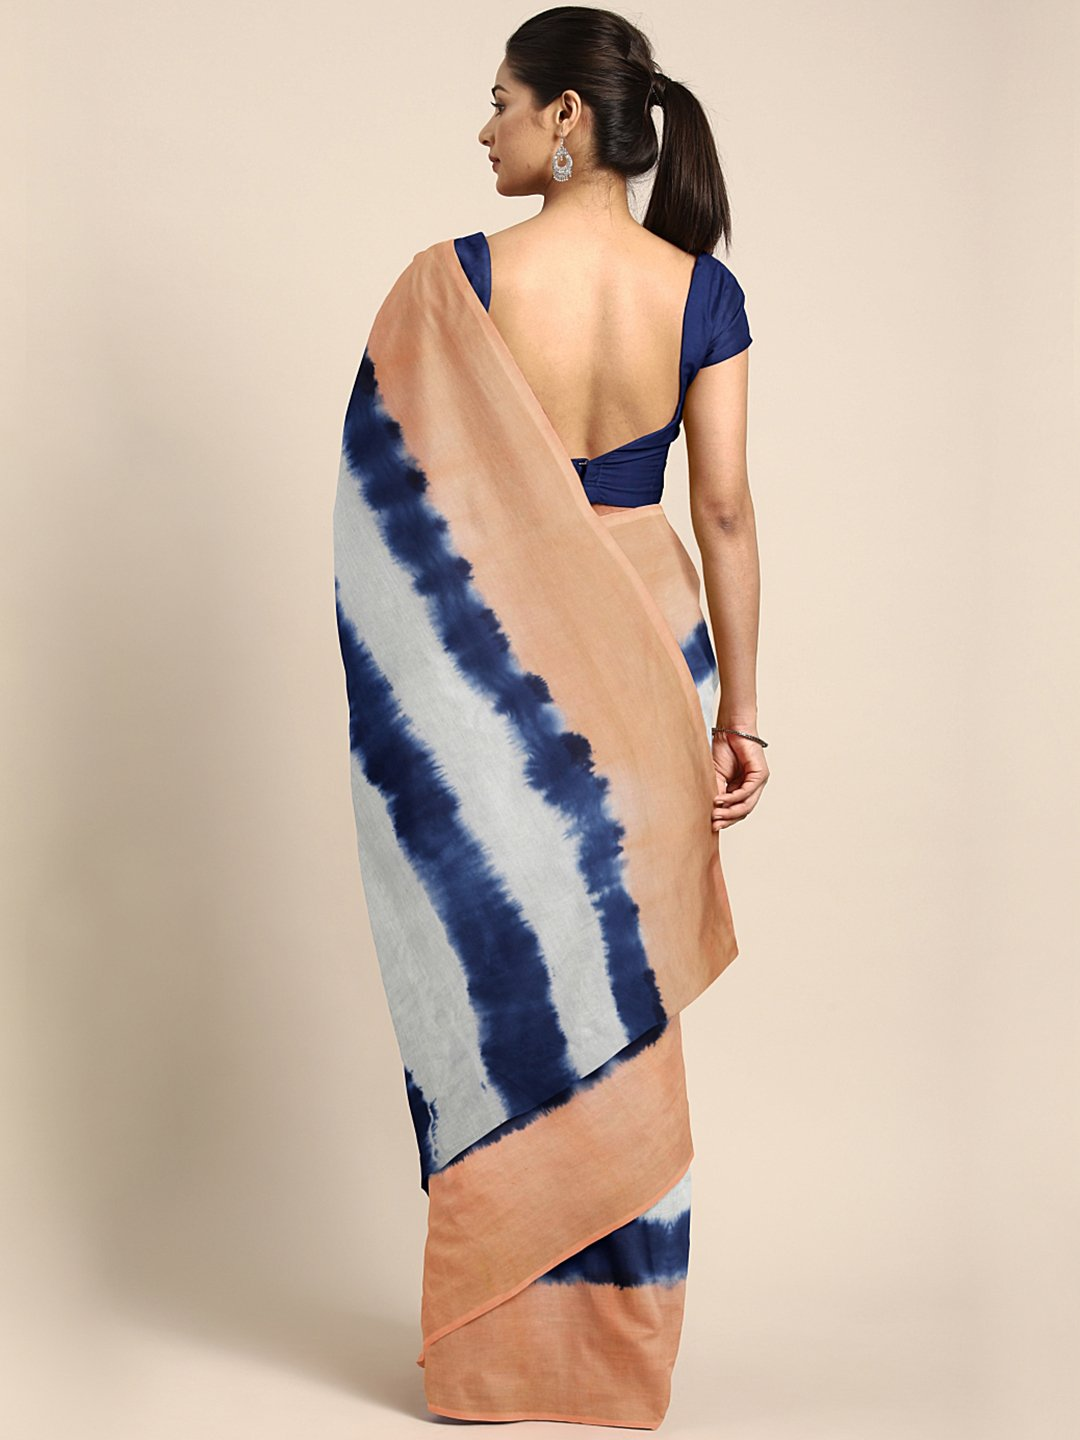 Peach-Coloured & Navy Blue Tie & Dyed Handcrafted Saree-Saree-Kalakari India-BHKPSA0066-Cotton, Dabu, Geographical Indication, Hand Blocks, Hand Crafted, Heritage Prints, Indigo, Natural Dyes, Sarees, Sustainable Fabrics-[Linen,Ethnic,wear,Fashionista,Handloom,Handicraft,Indigo,blockprint,block,print,Cotton,Chanderi,Blue, latest,classy,party,bollywood,trendy,summer,style,traditional,formal,elegant,unique,style,hand,block,print, dabu,booti,gift,present,glamorous,affordable,collectible,Sari,Saree,